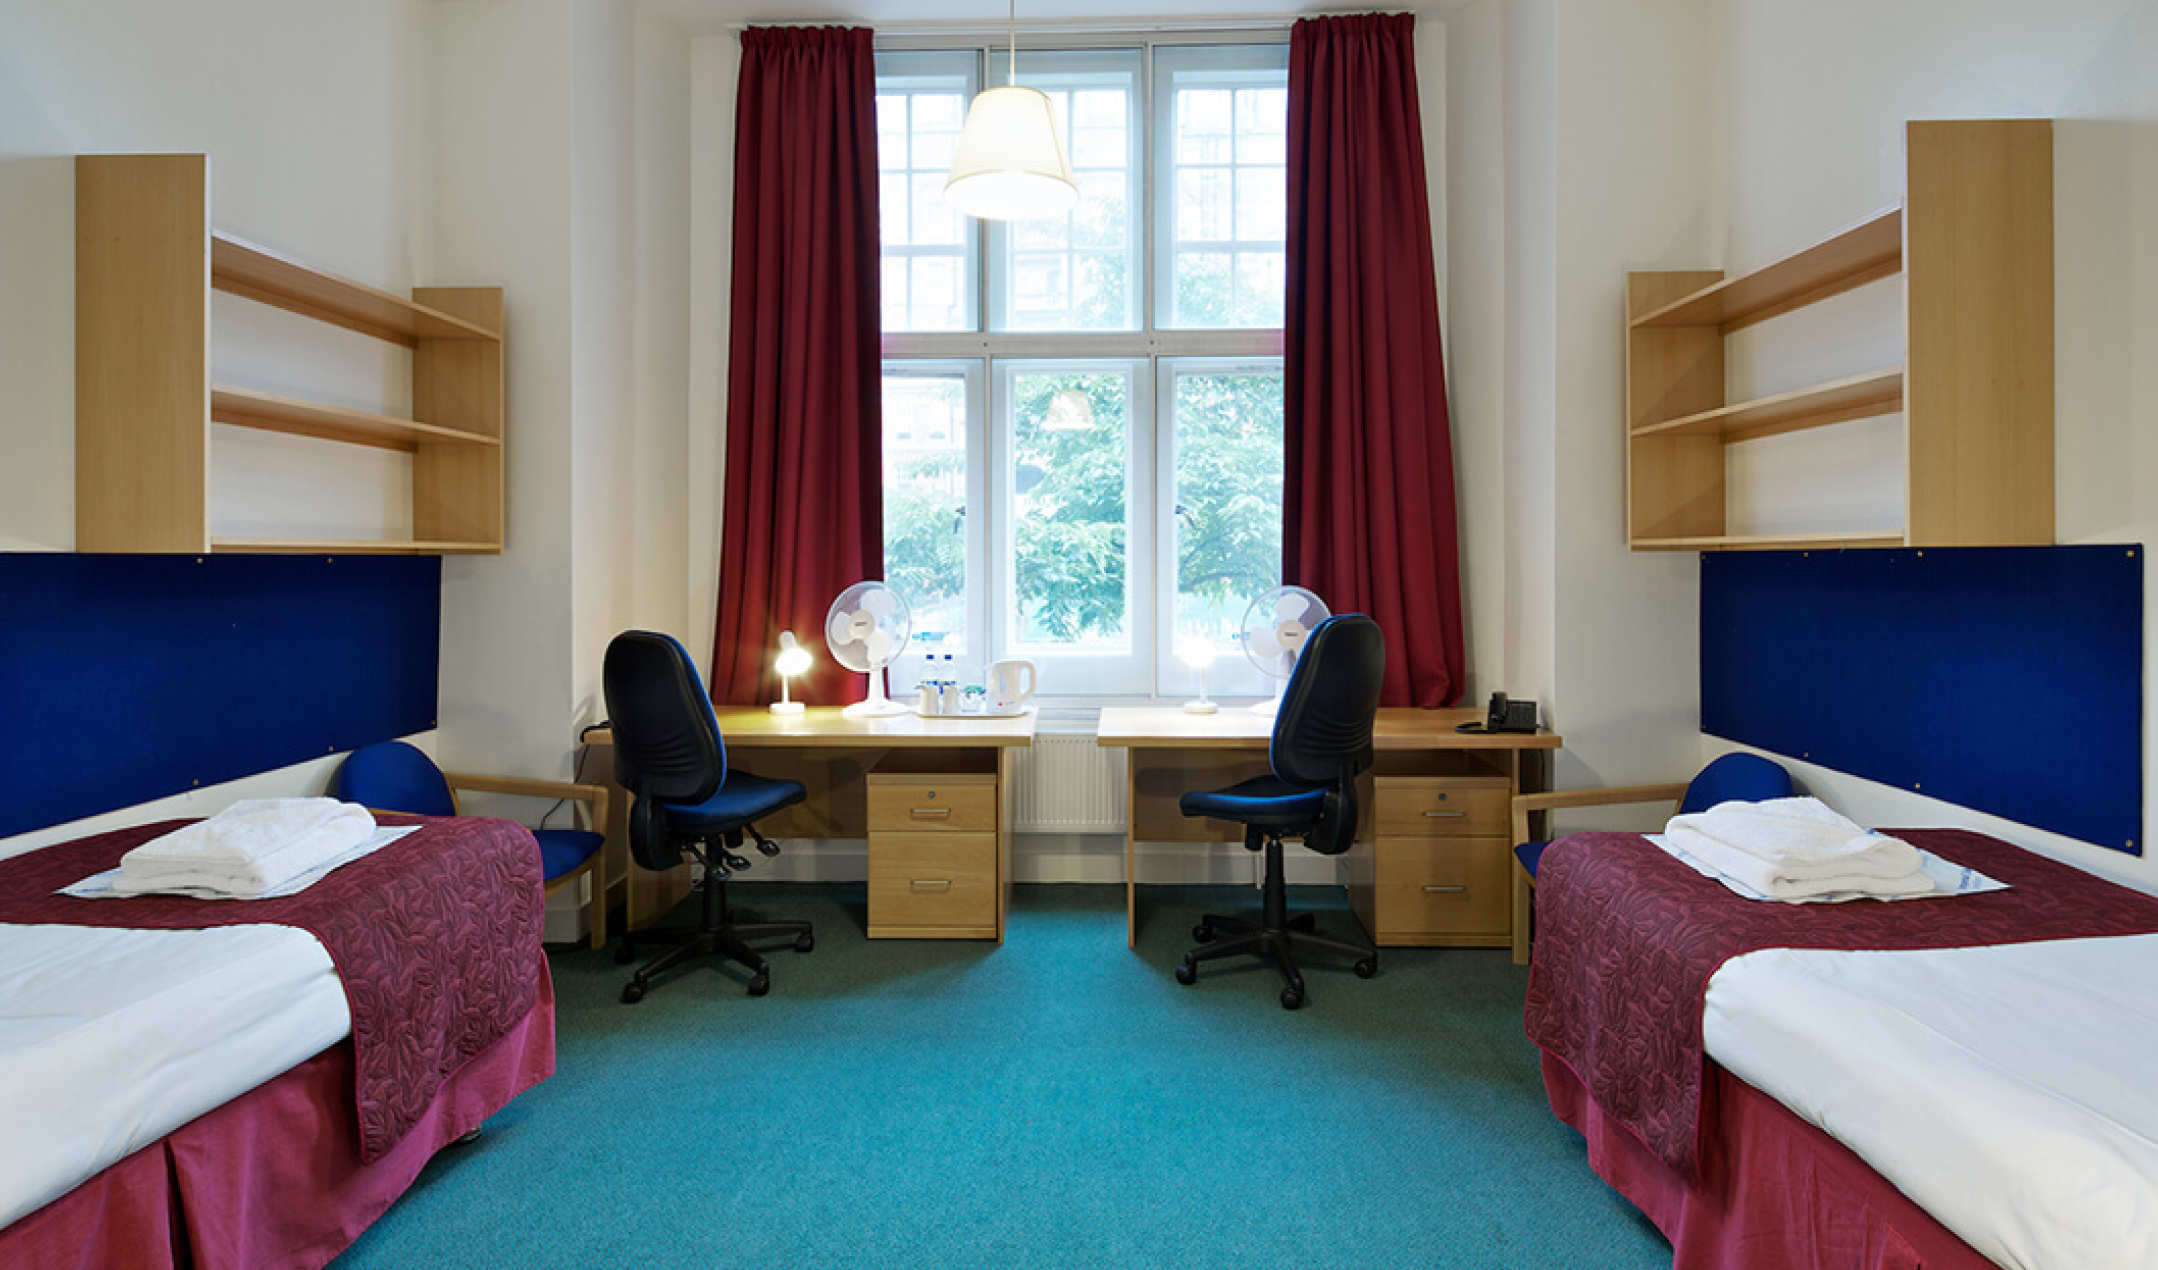 Summer accommodation in London - twin bed room at Beit Hall